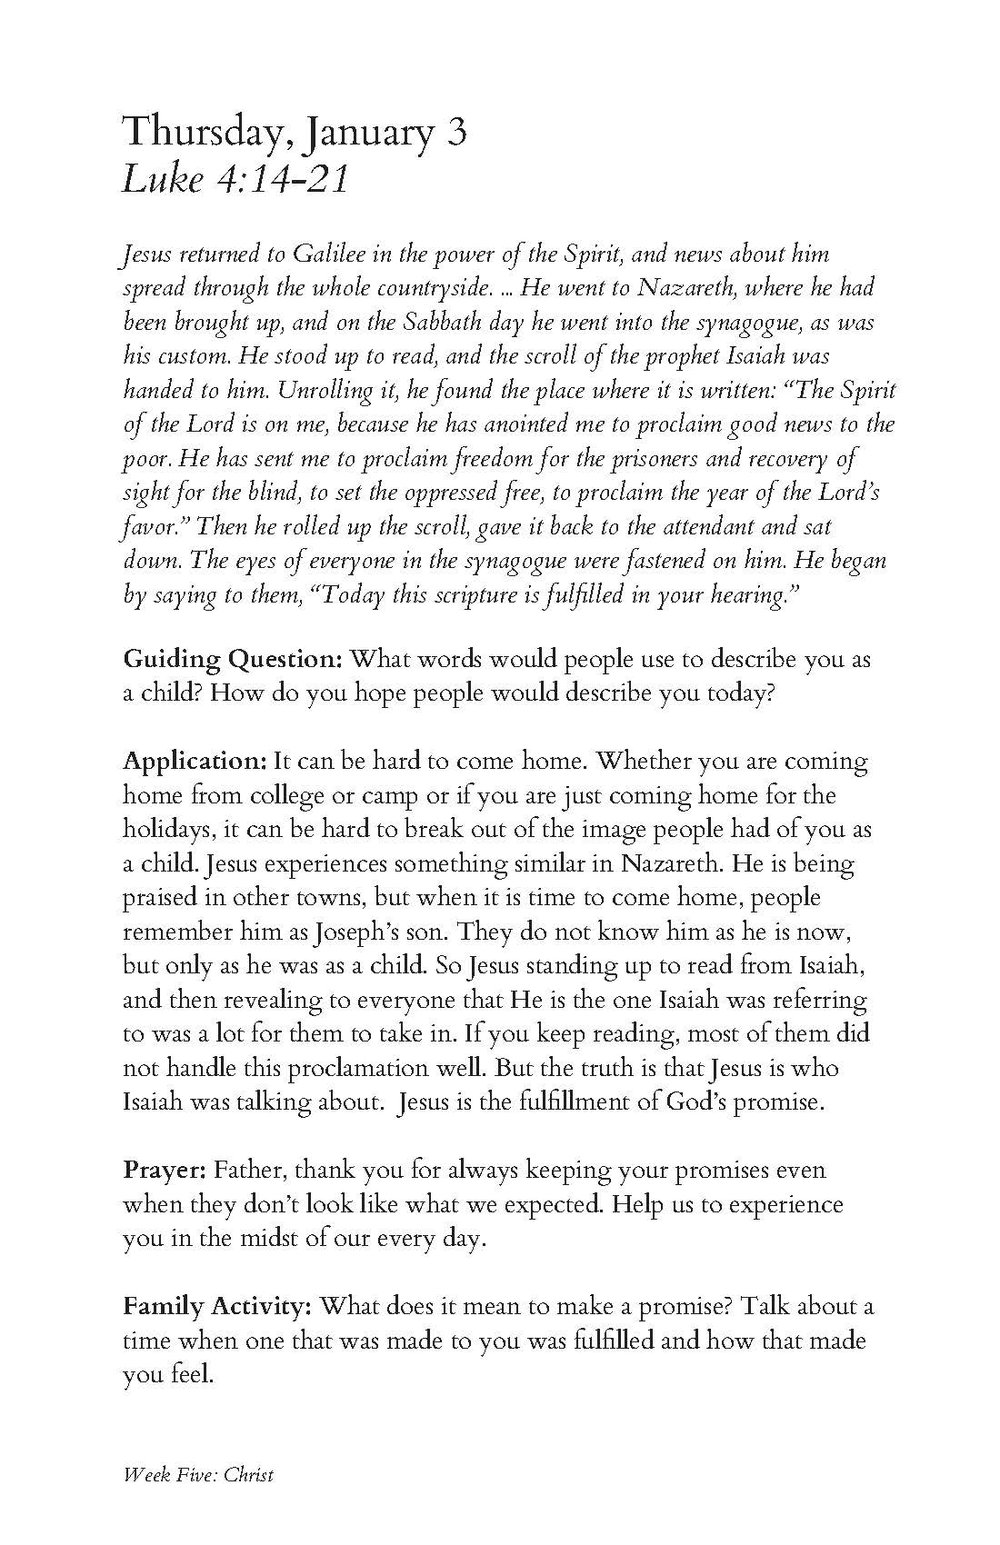 Final Advent Guide - for digital publication_Page_42.jpg